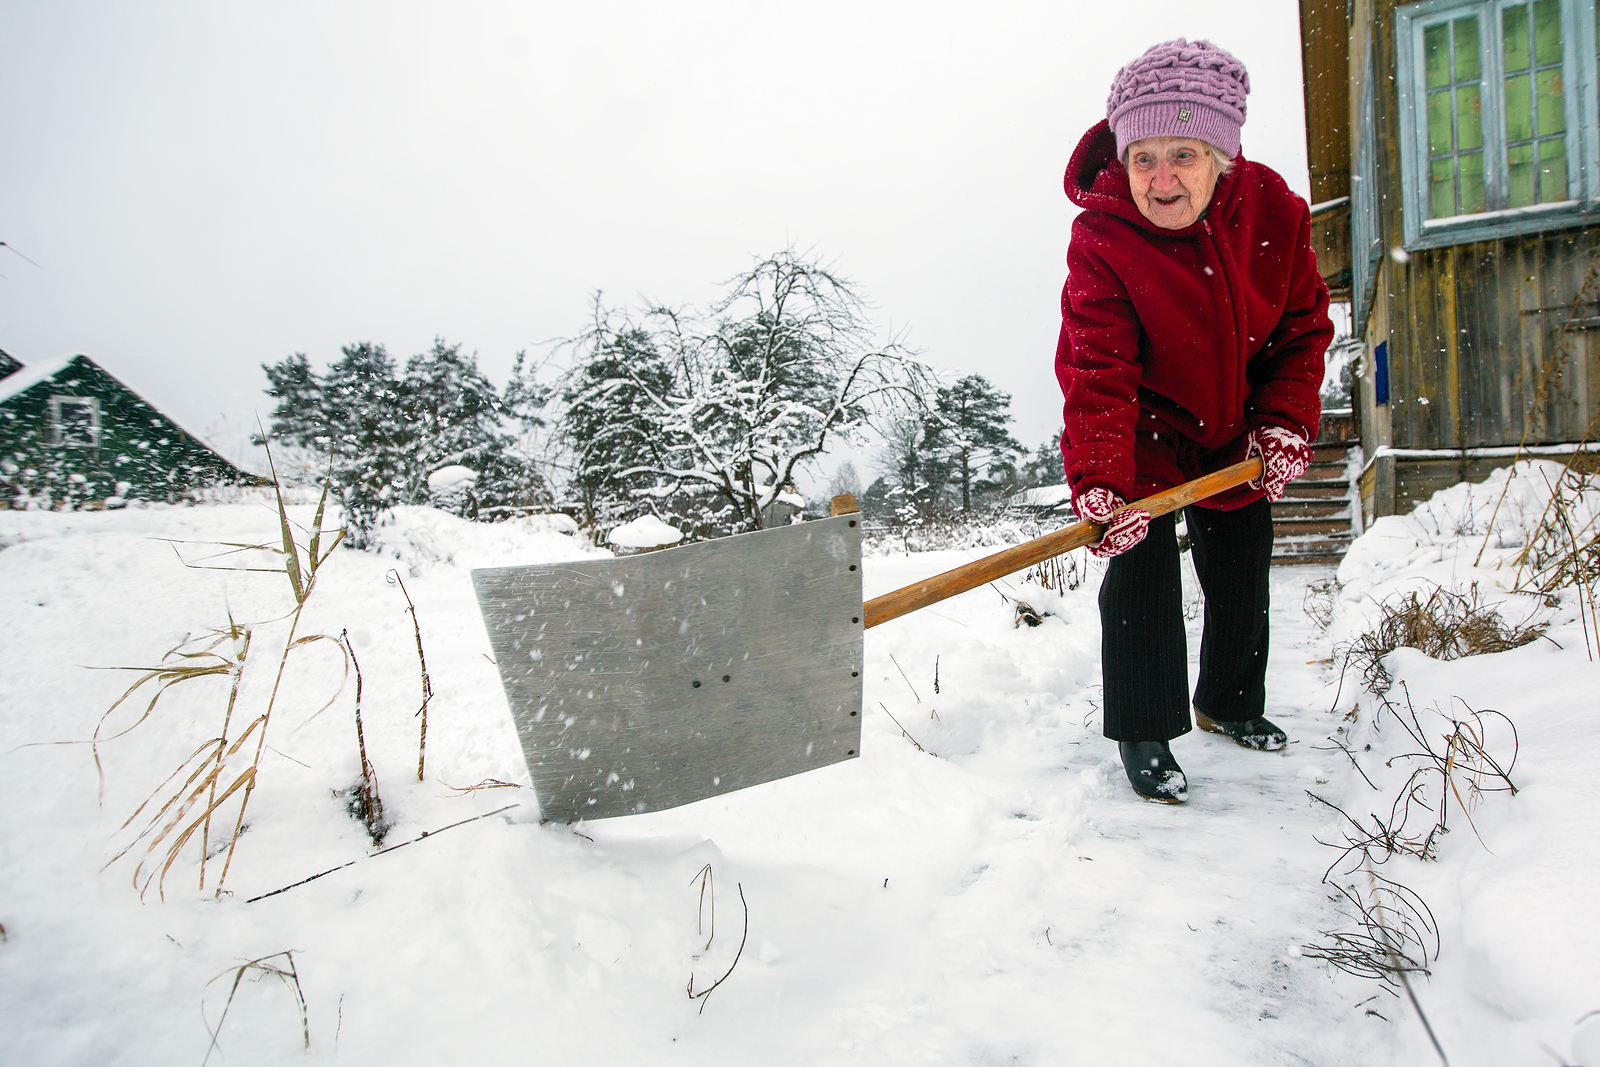 Home Health Care in Shadyside PA: Snow Preparations